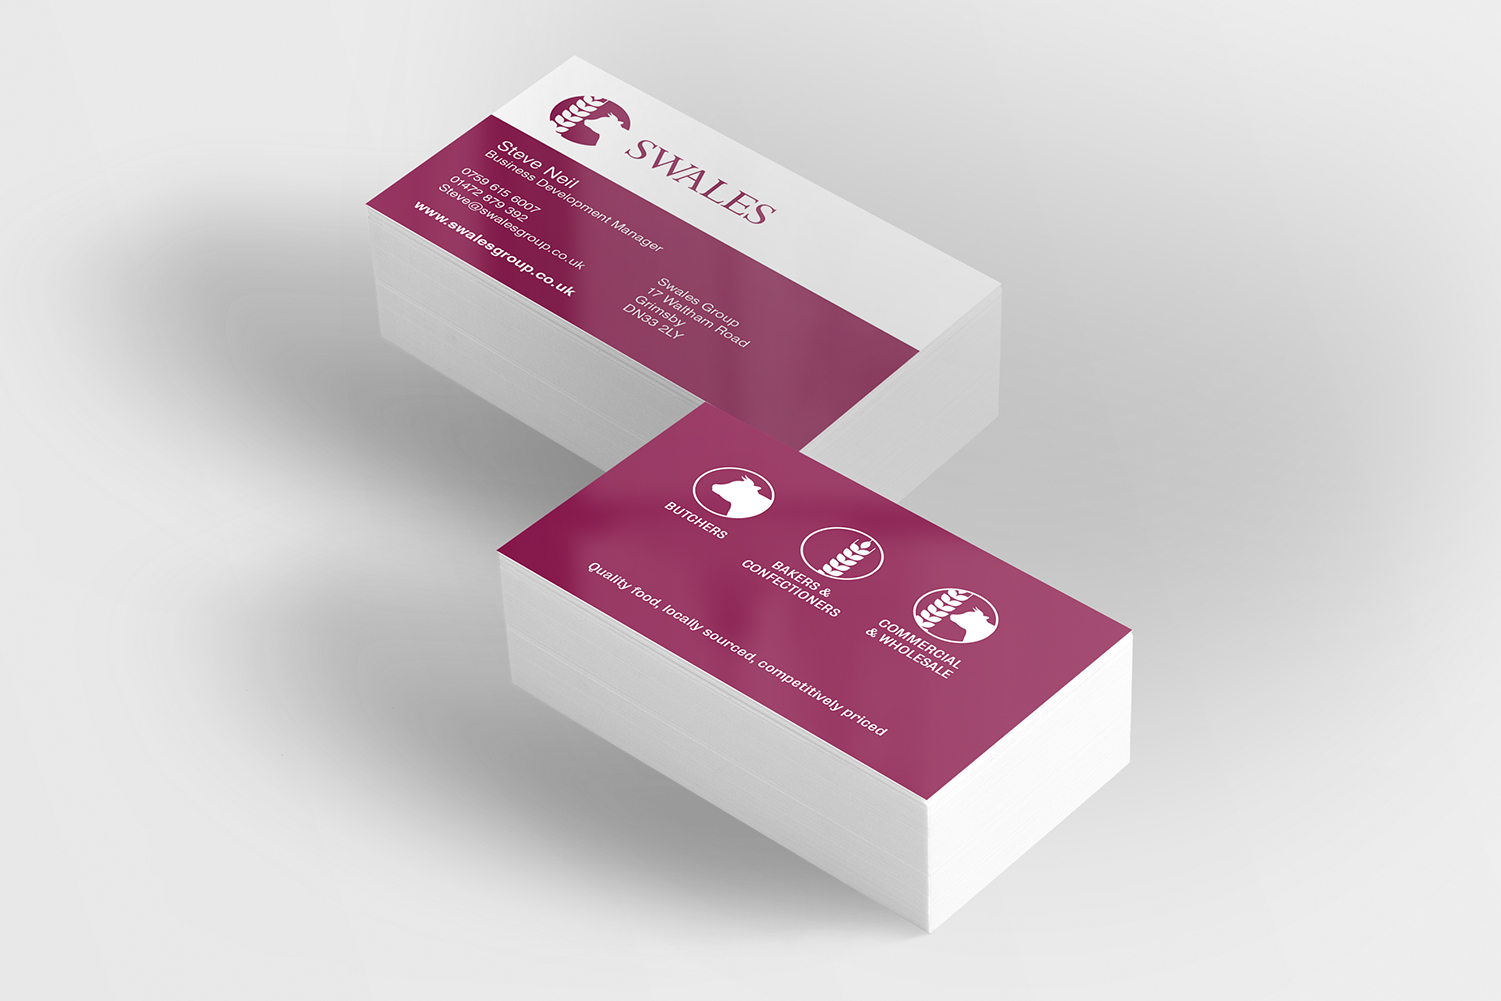 Our work kinetic marketing design swales butchers bakers and confectioners business cards reheart Images